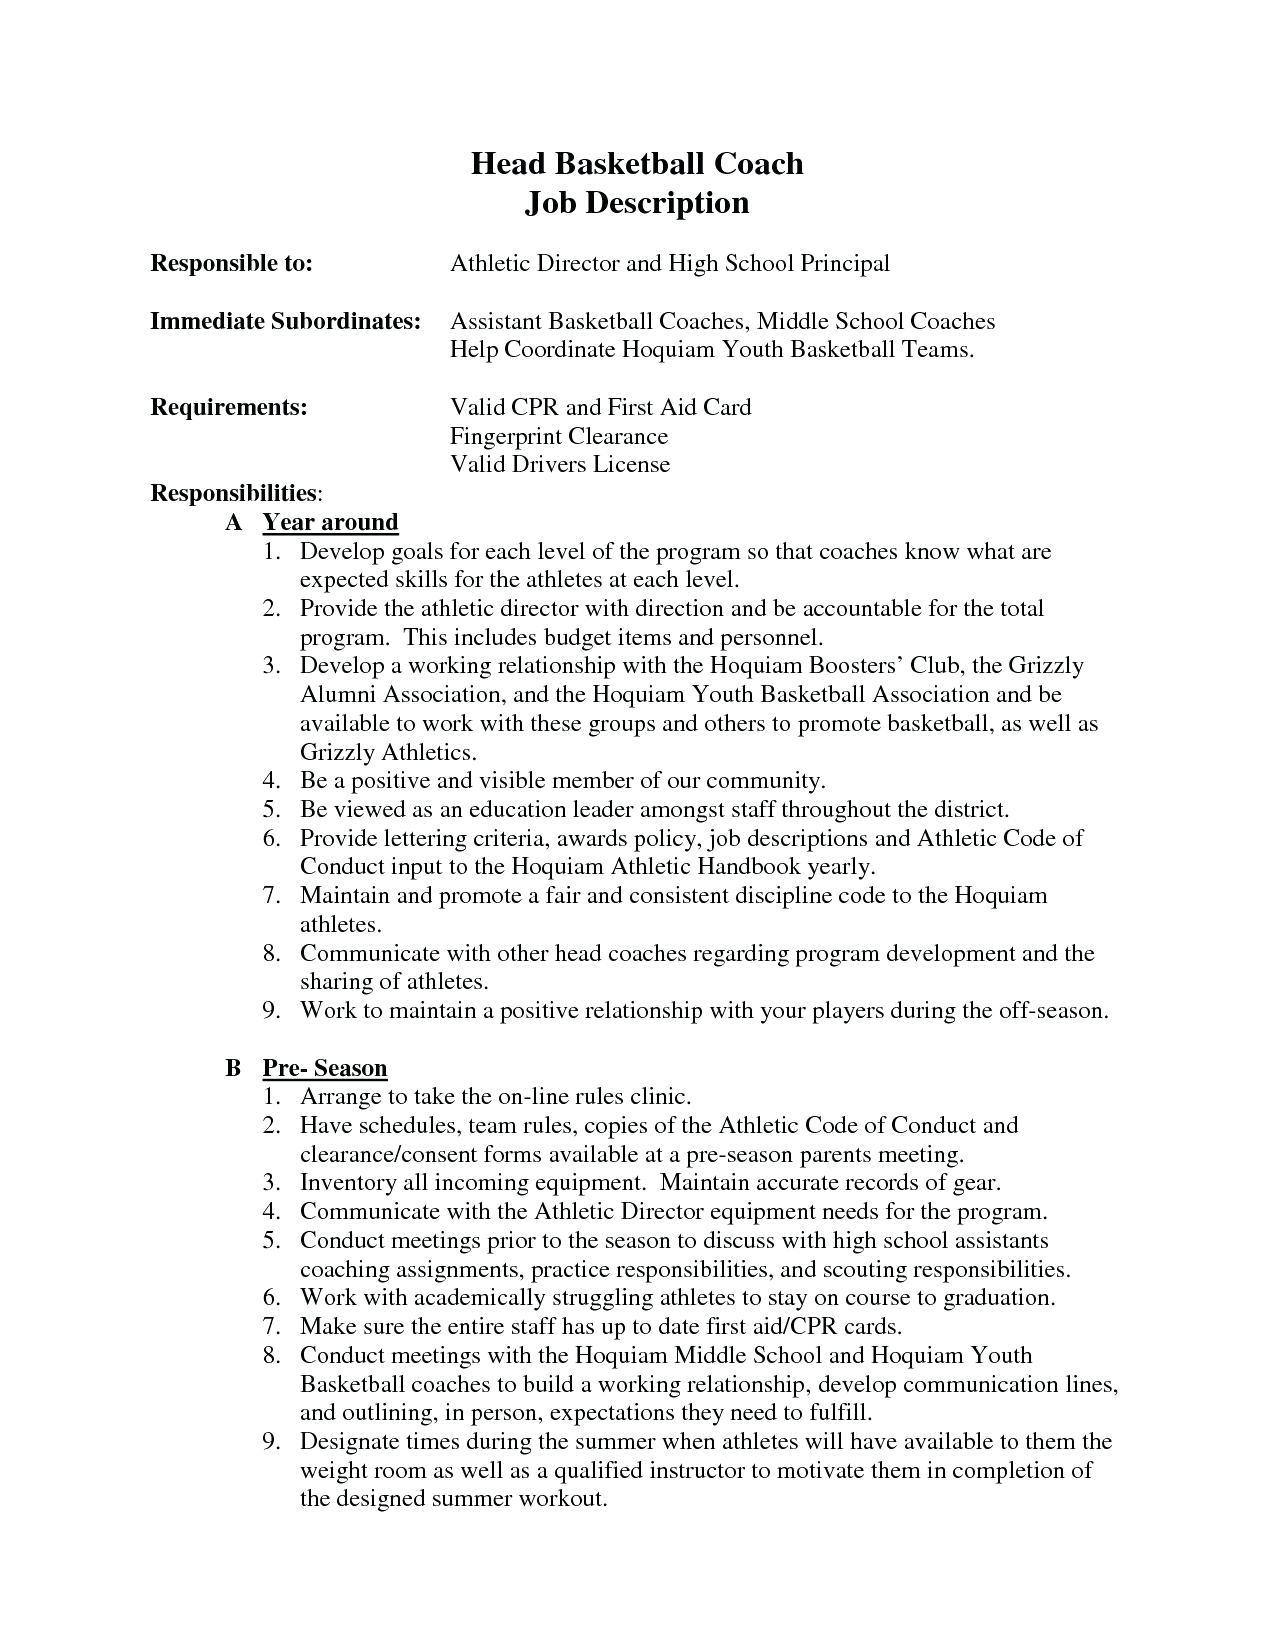 78 Top Basketball Coaching Resume Cover Letter for Images